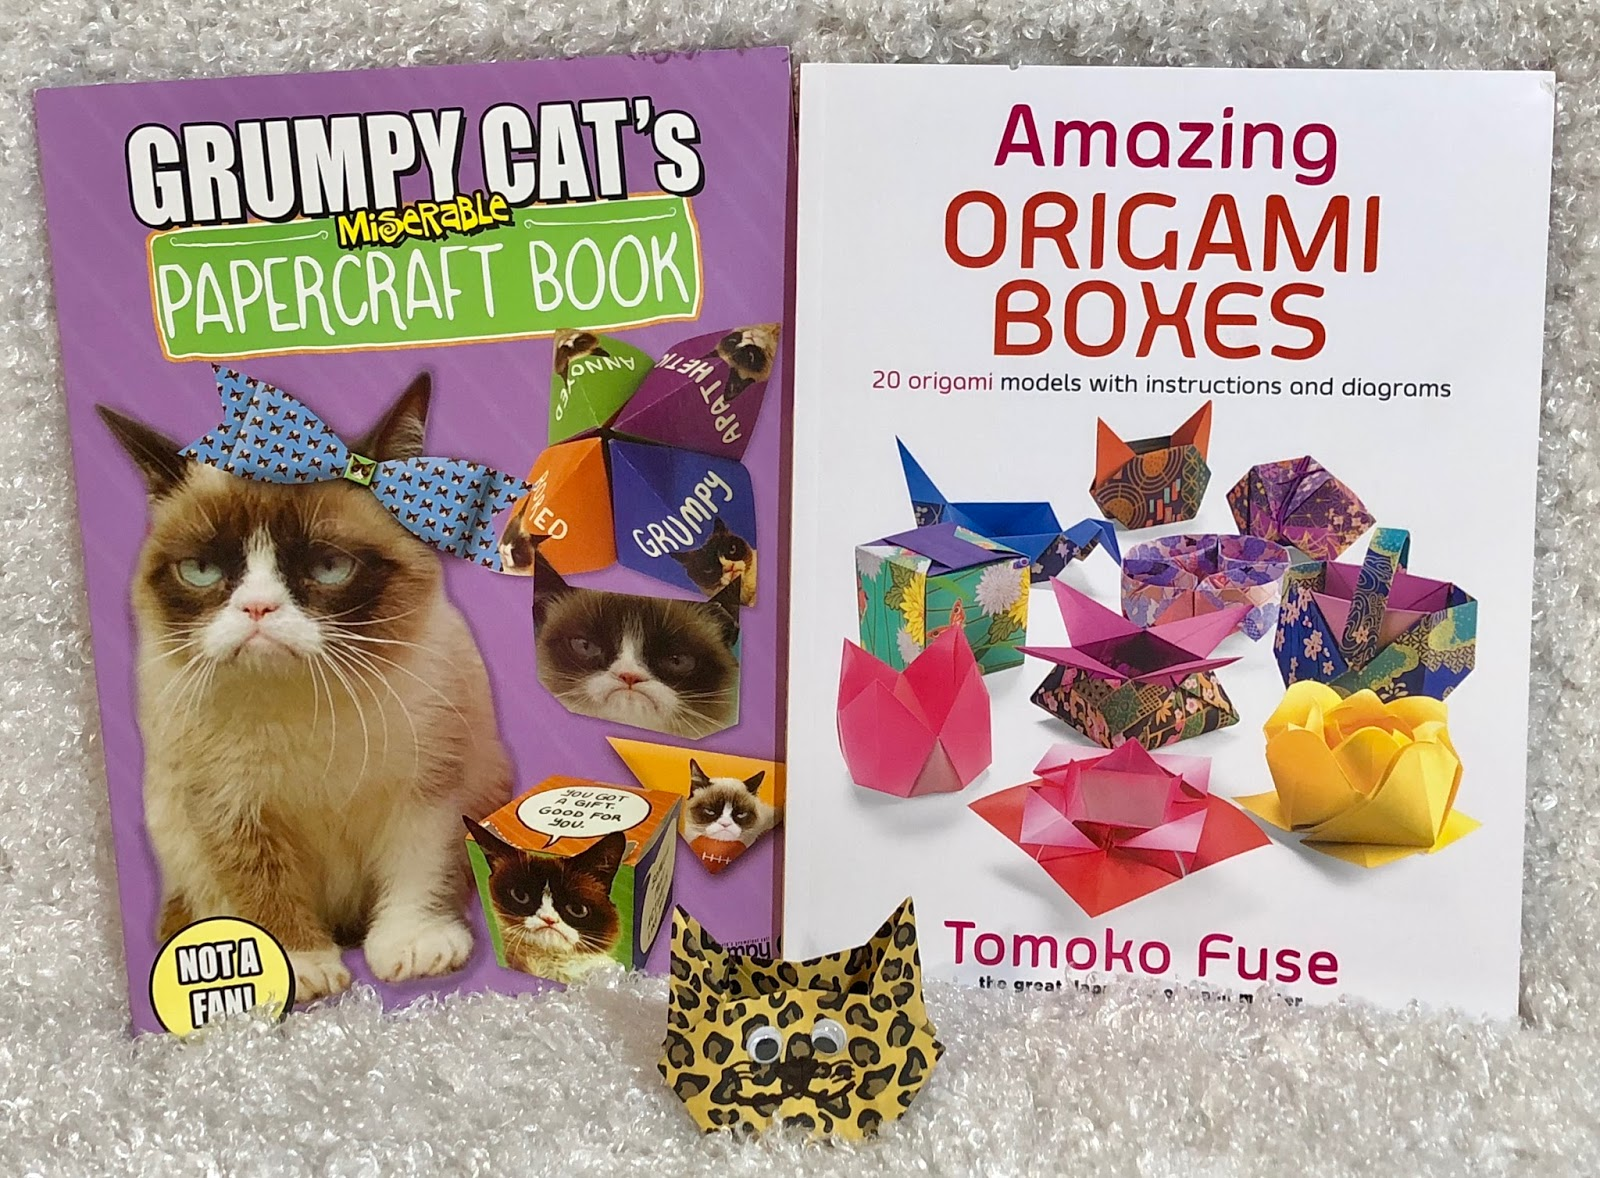 Stacy Tilton Reviews From Paper To Yarn Crafting Is A Great Stress Origami Boxes Tomoko Fuse S Reliever